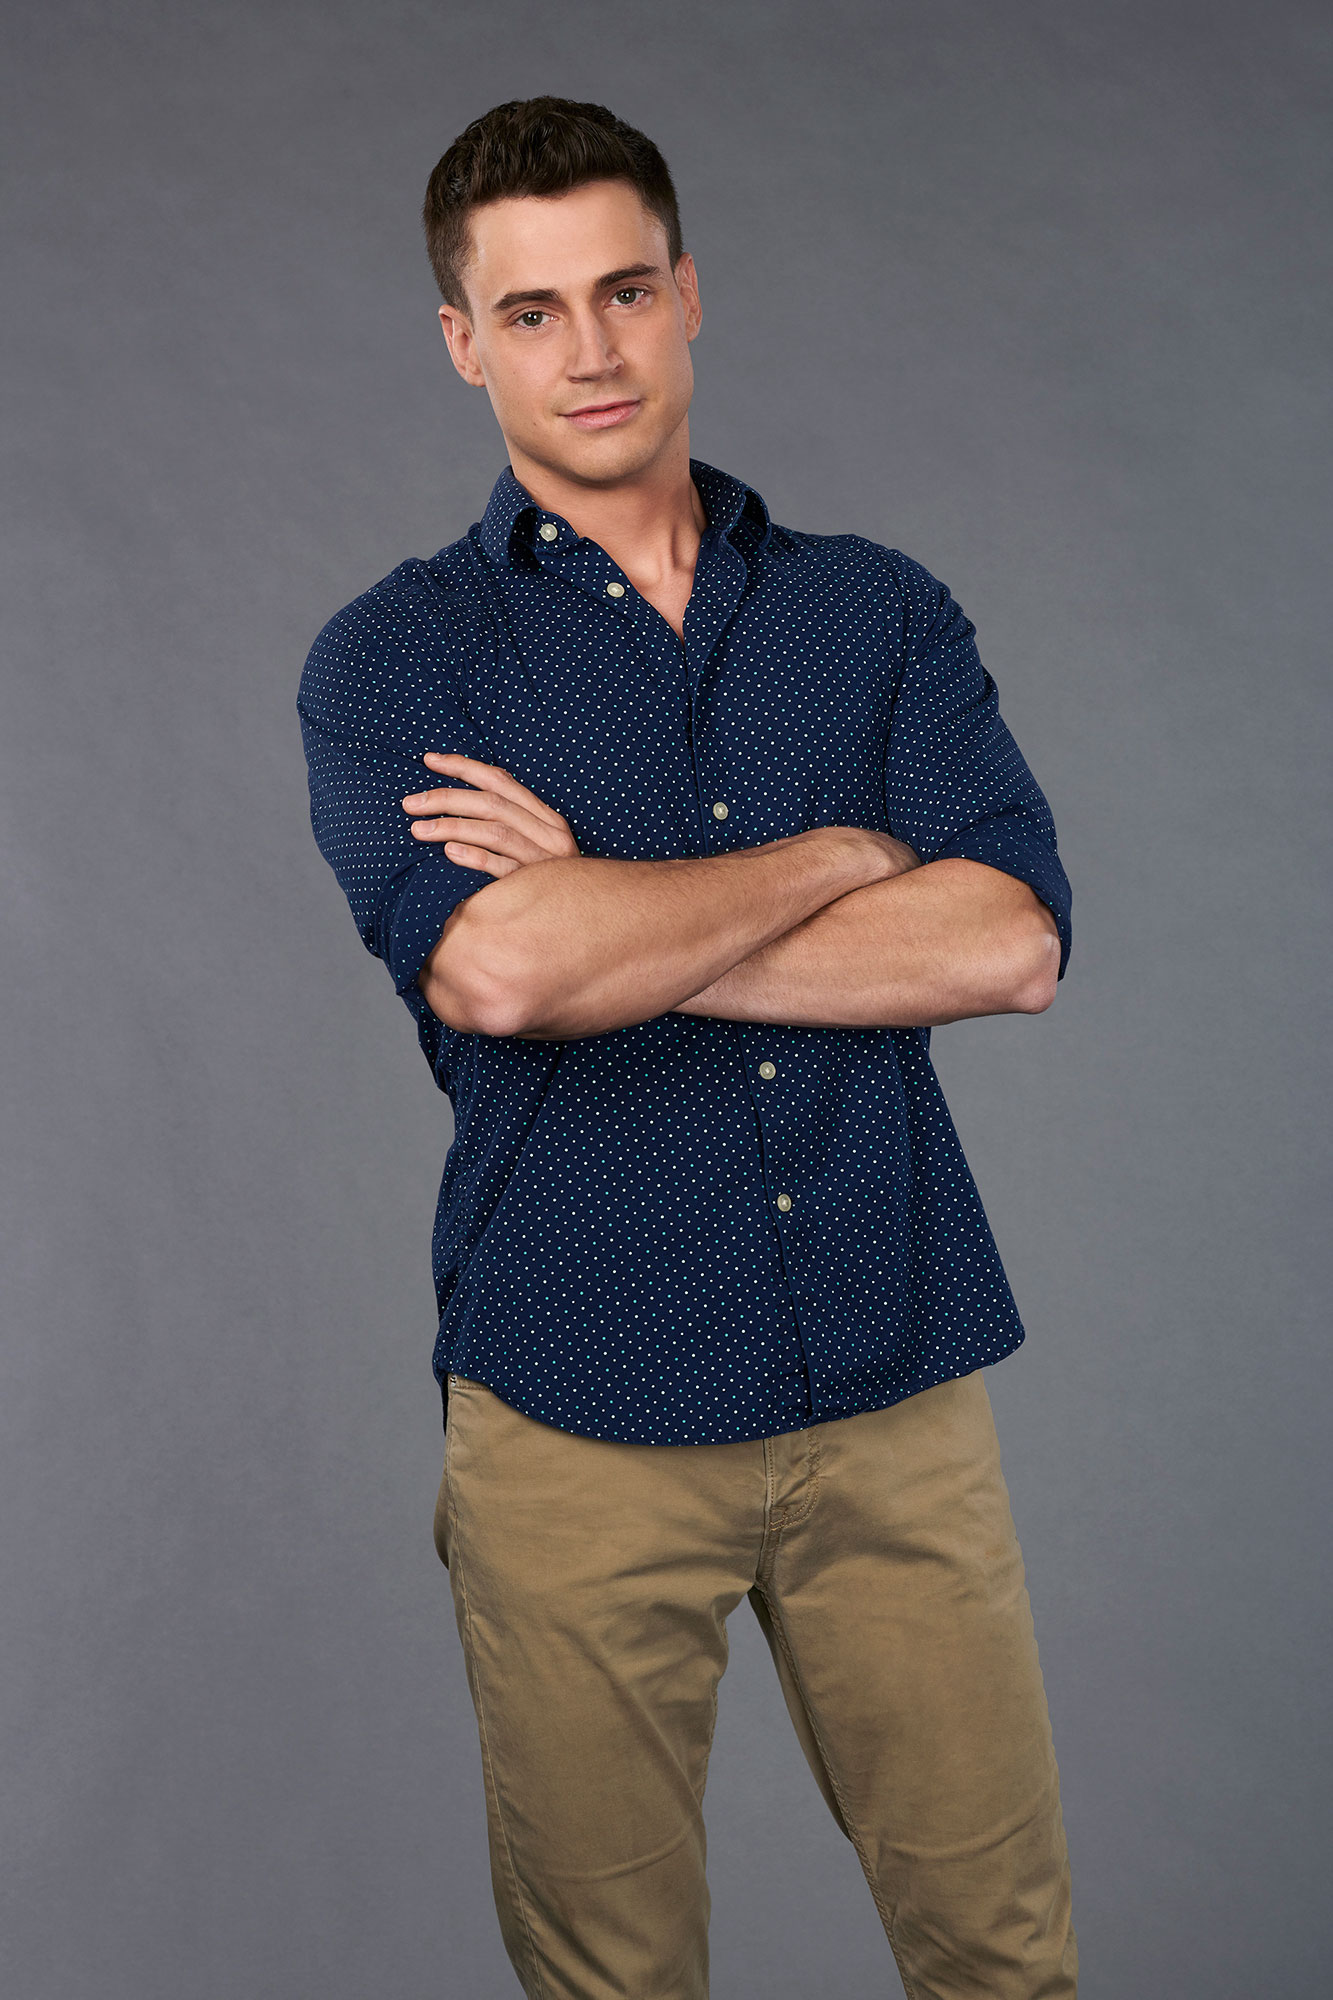 """'The Bachelorette' Season 15: 11 Strangest Revelations From Hannah Brown's Suitors' Bios - The math teacher, 30, """"loves math so much"""" and is a """"pun and sarcasm enthusiast."""""""